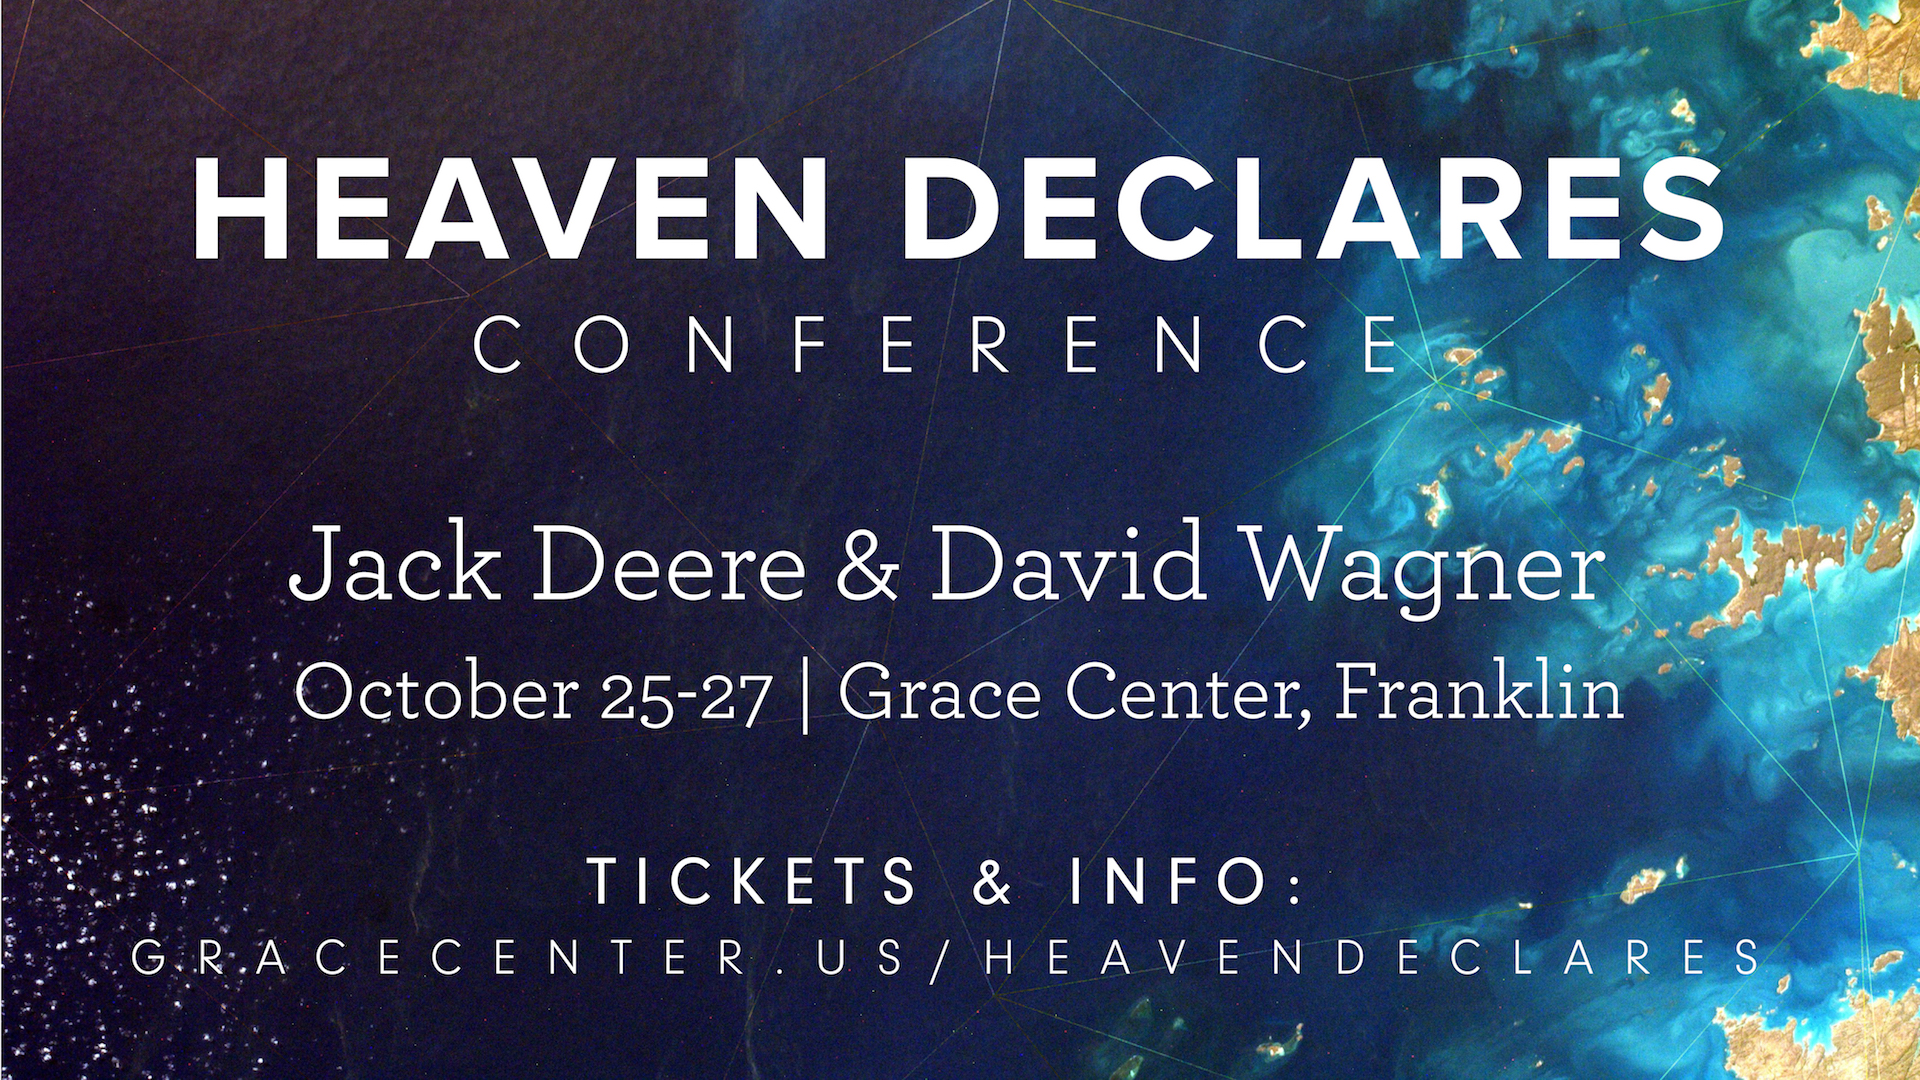 Heaven Declares 2018 Announcement.jpg